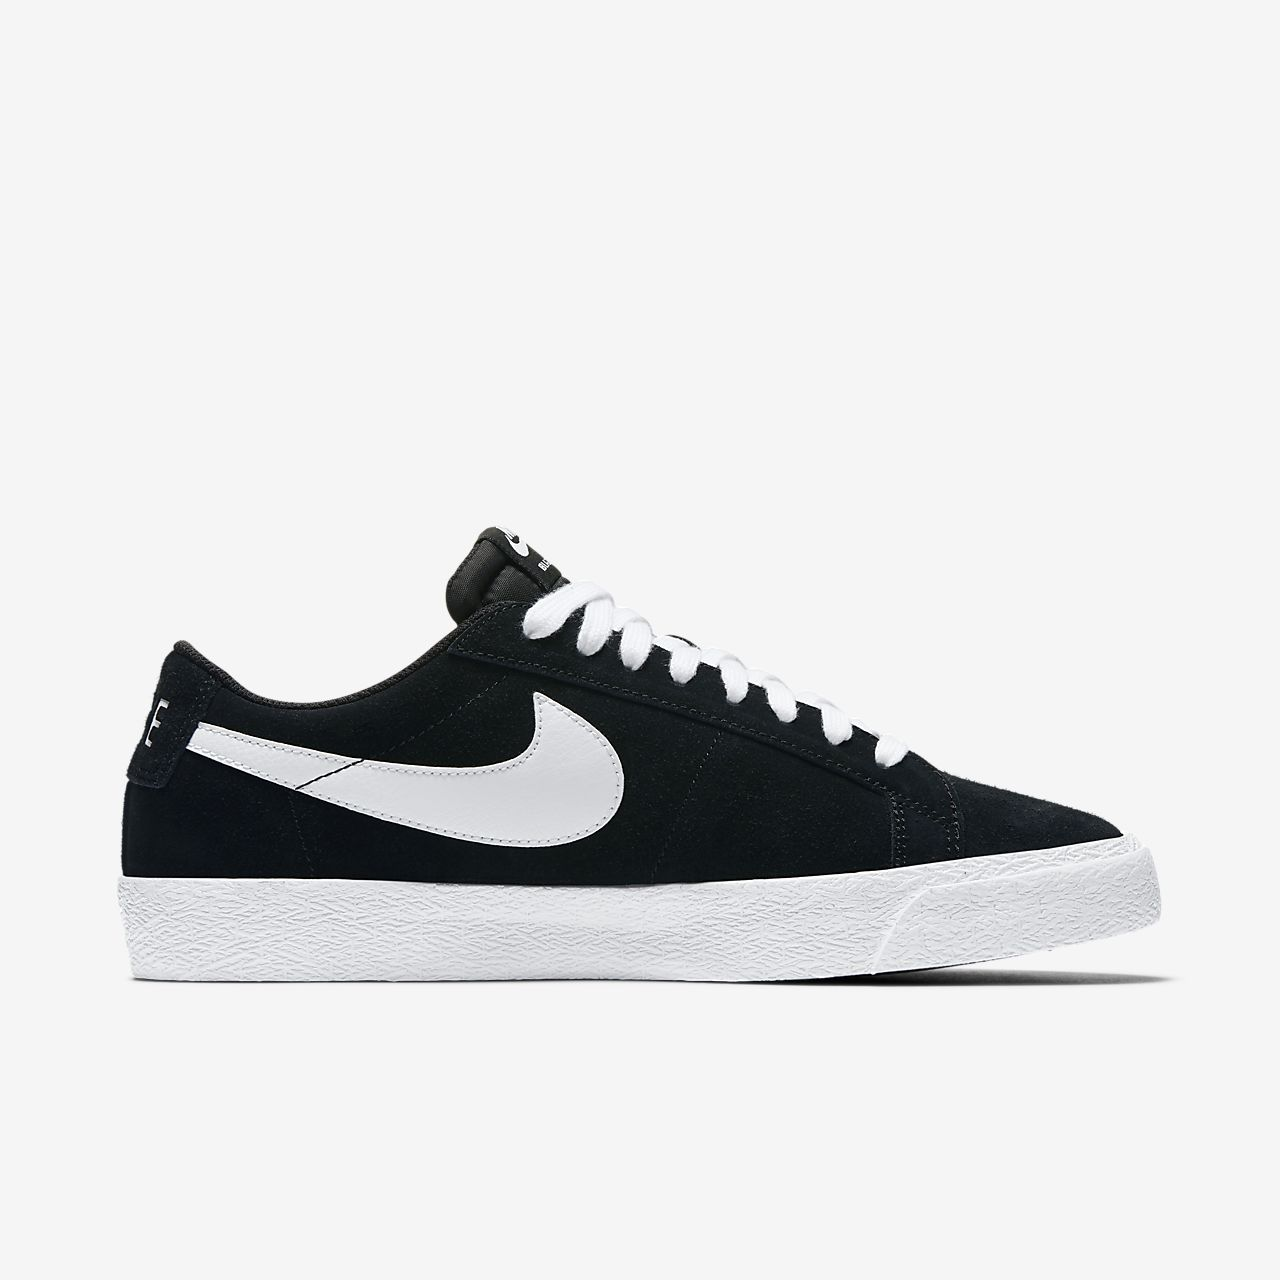 separation shoes baeaf b0f8f ... Nike SB Blazer Zoom Low Men s Skateboarding Shoe